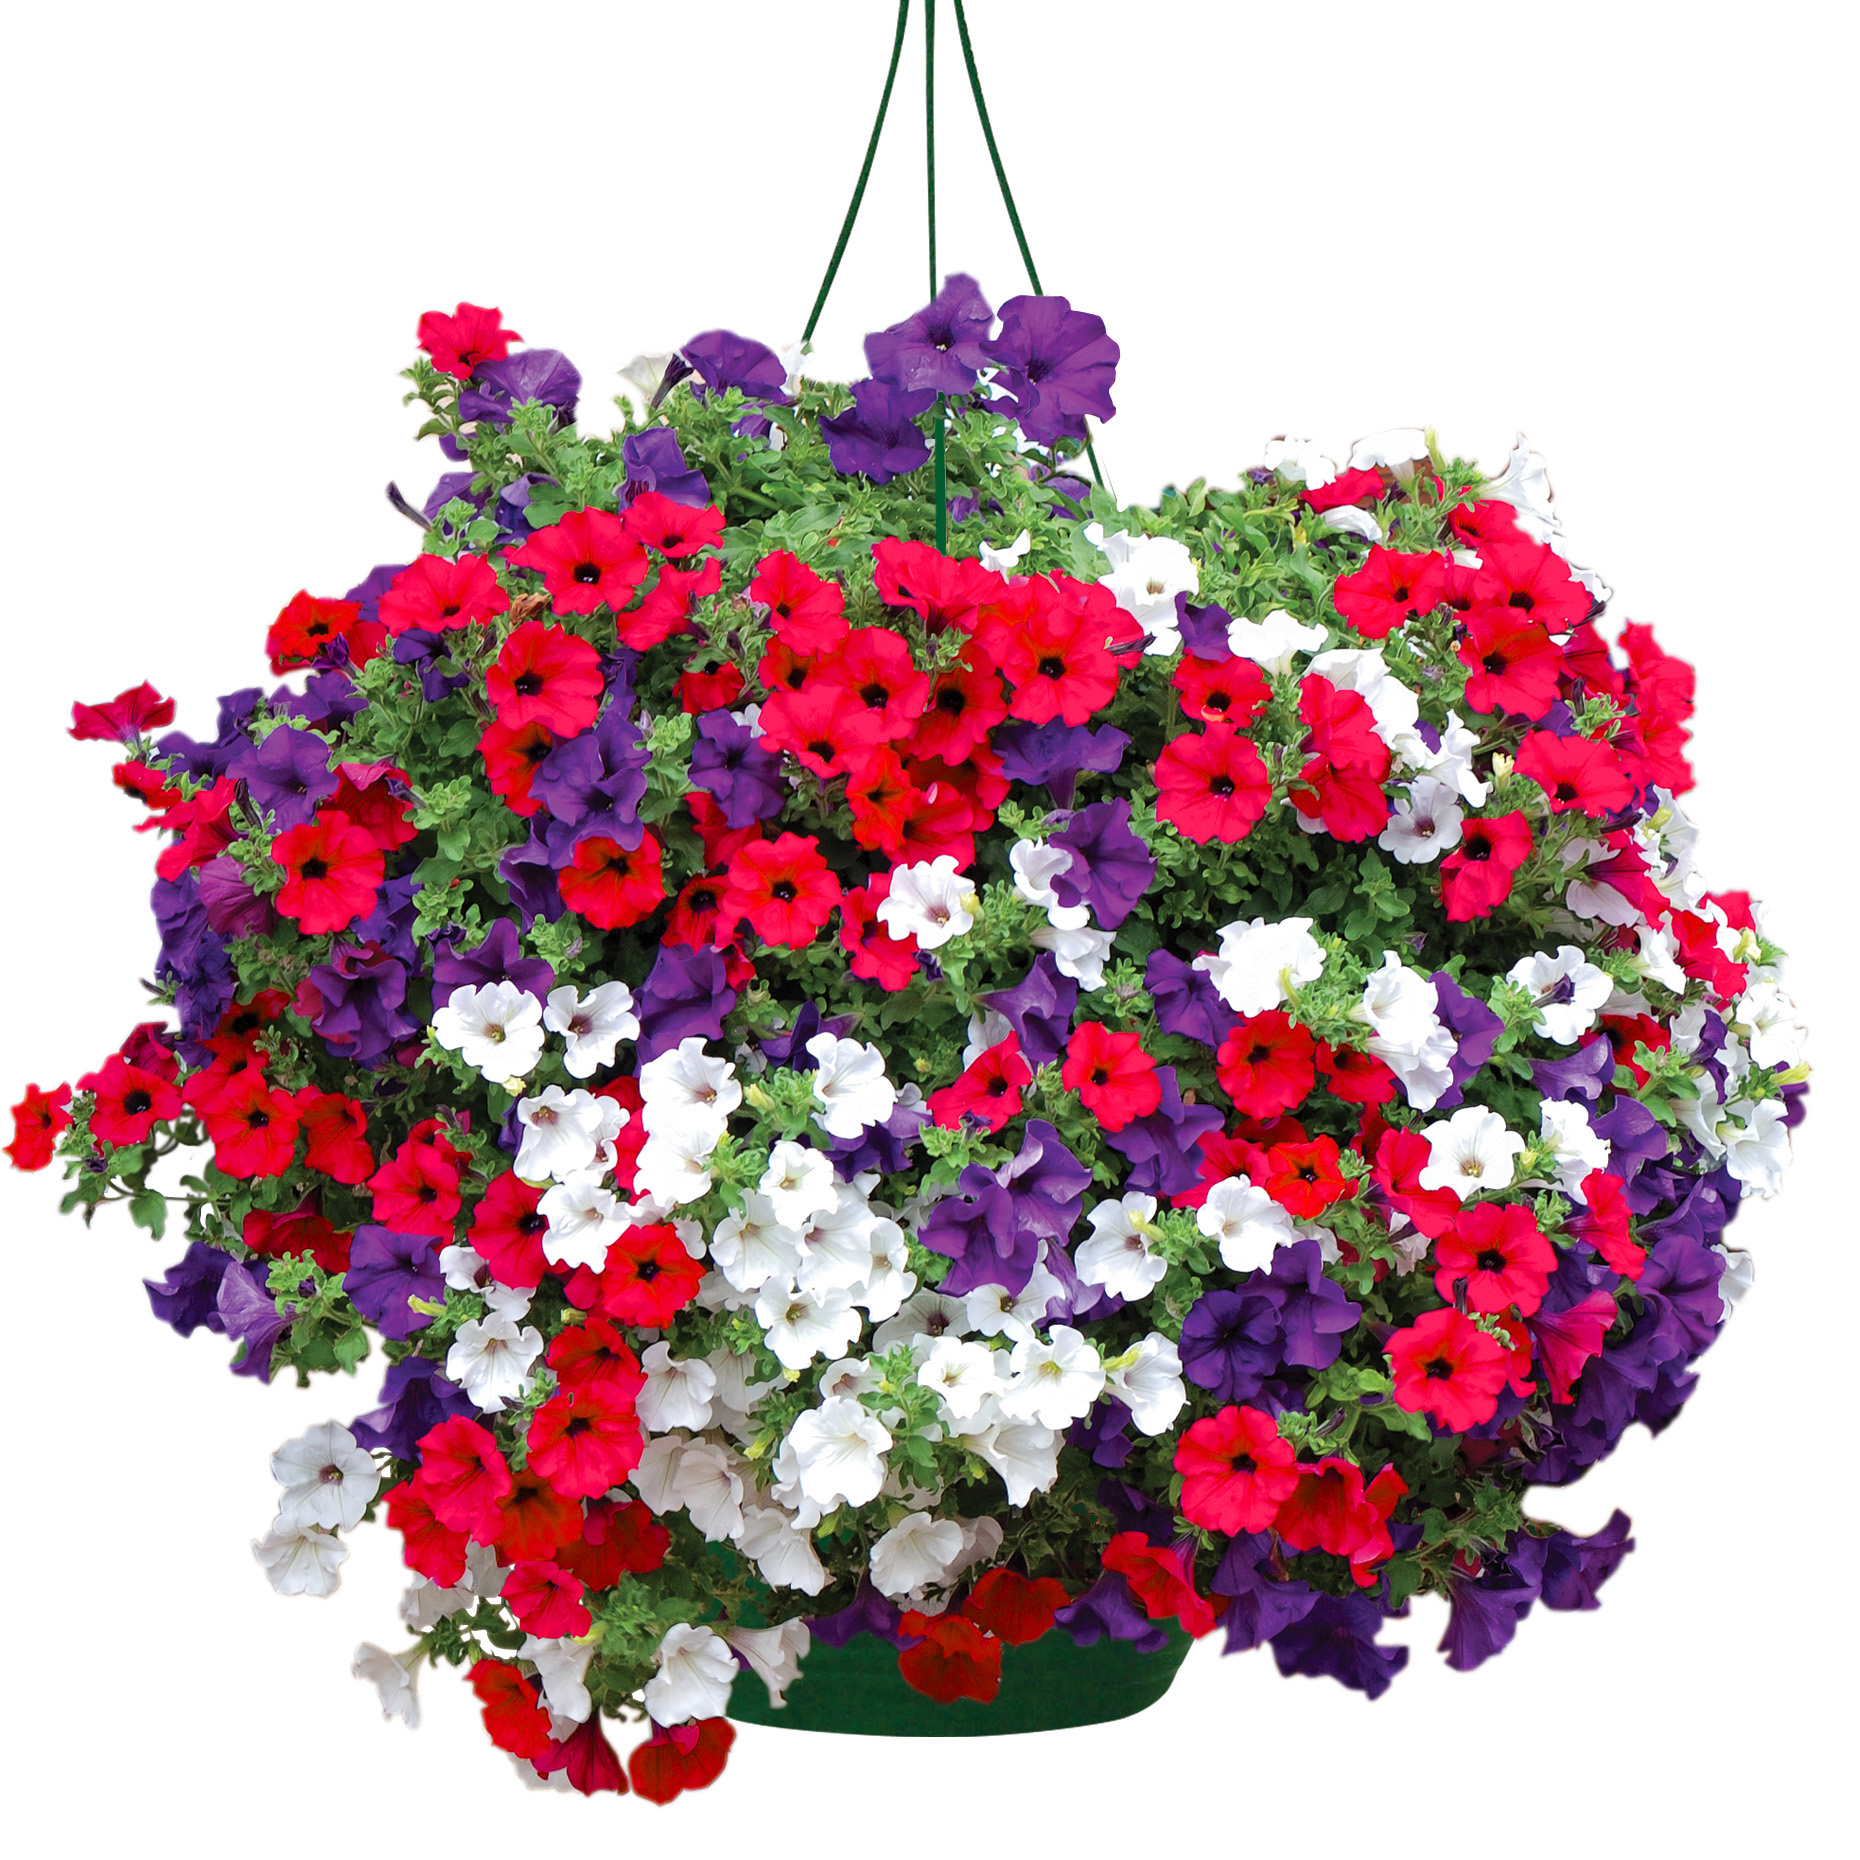 Flowers For Baskets For Hanging : Jersey plants direct voucher codes discount deals